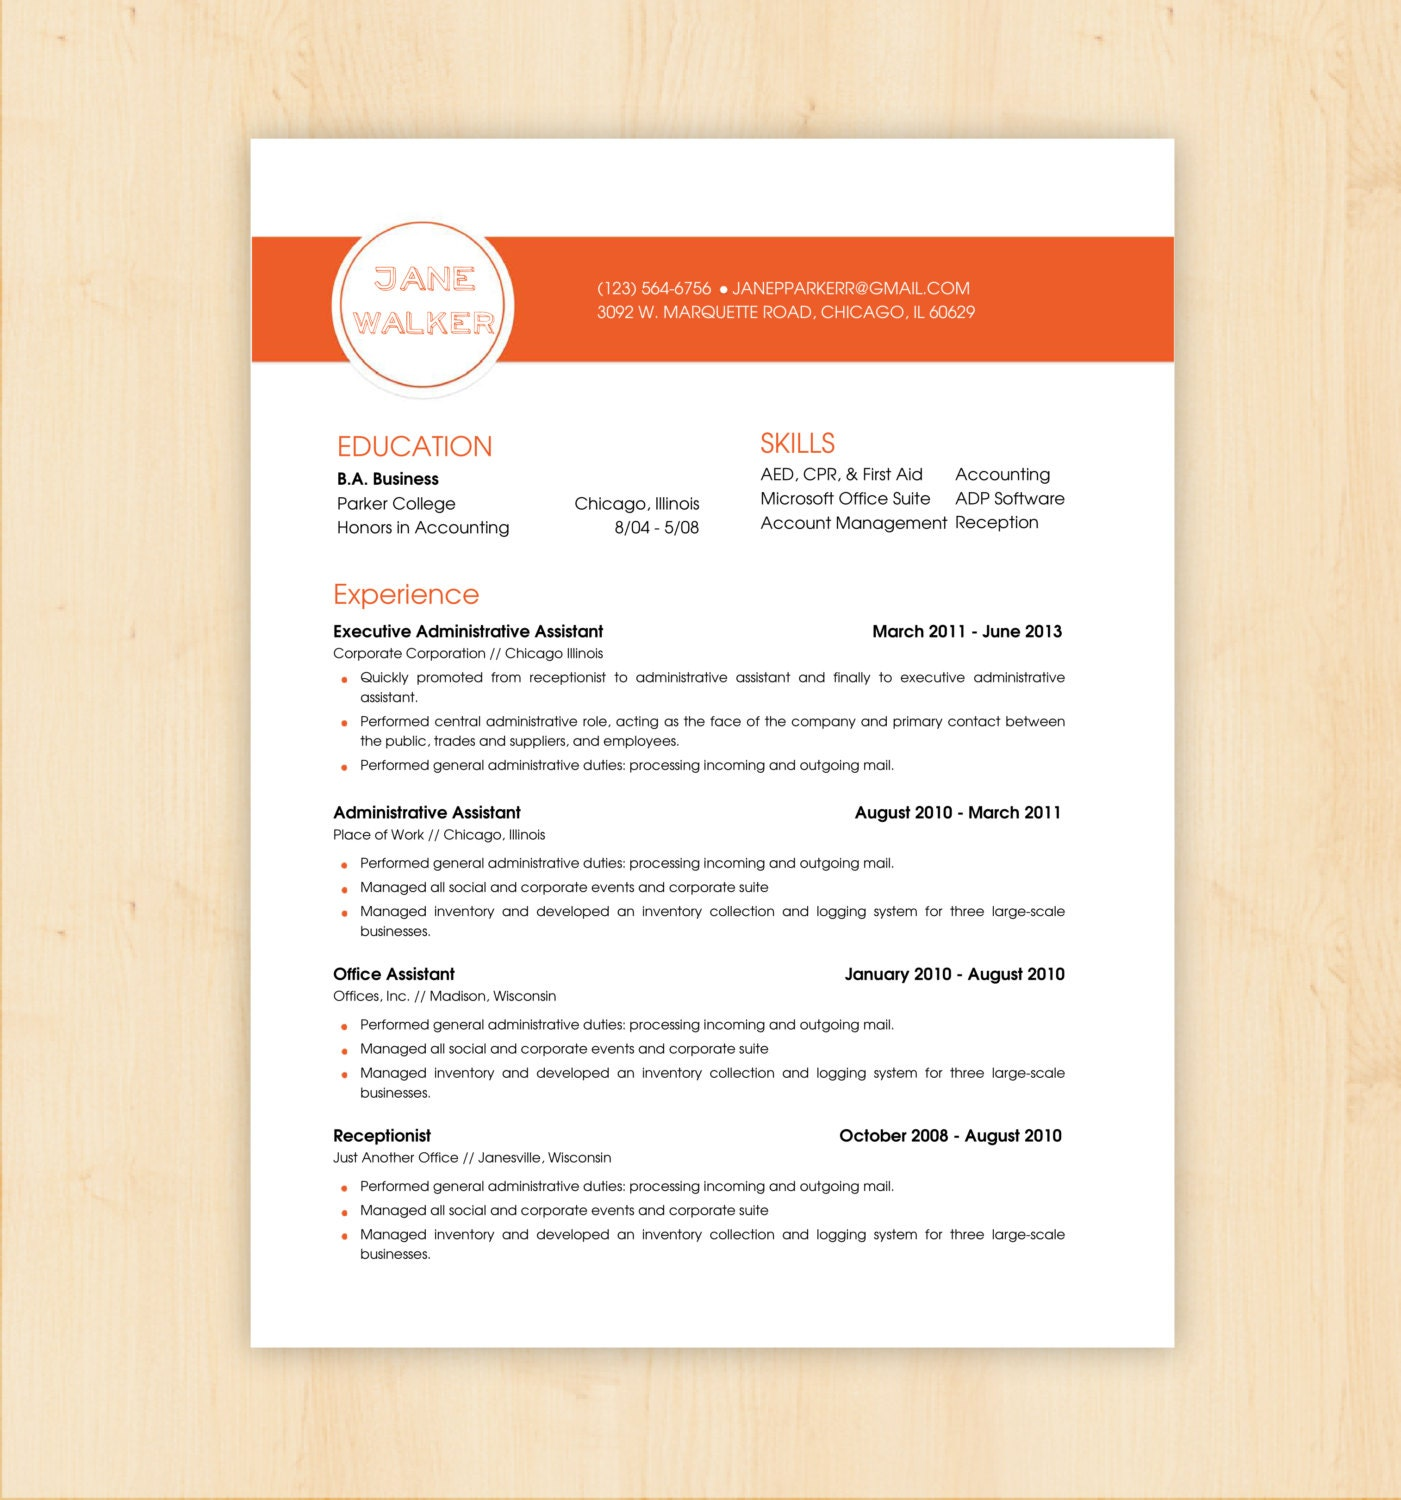 resume template cv template the jane walker resume by